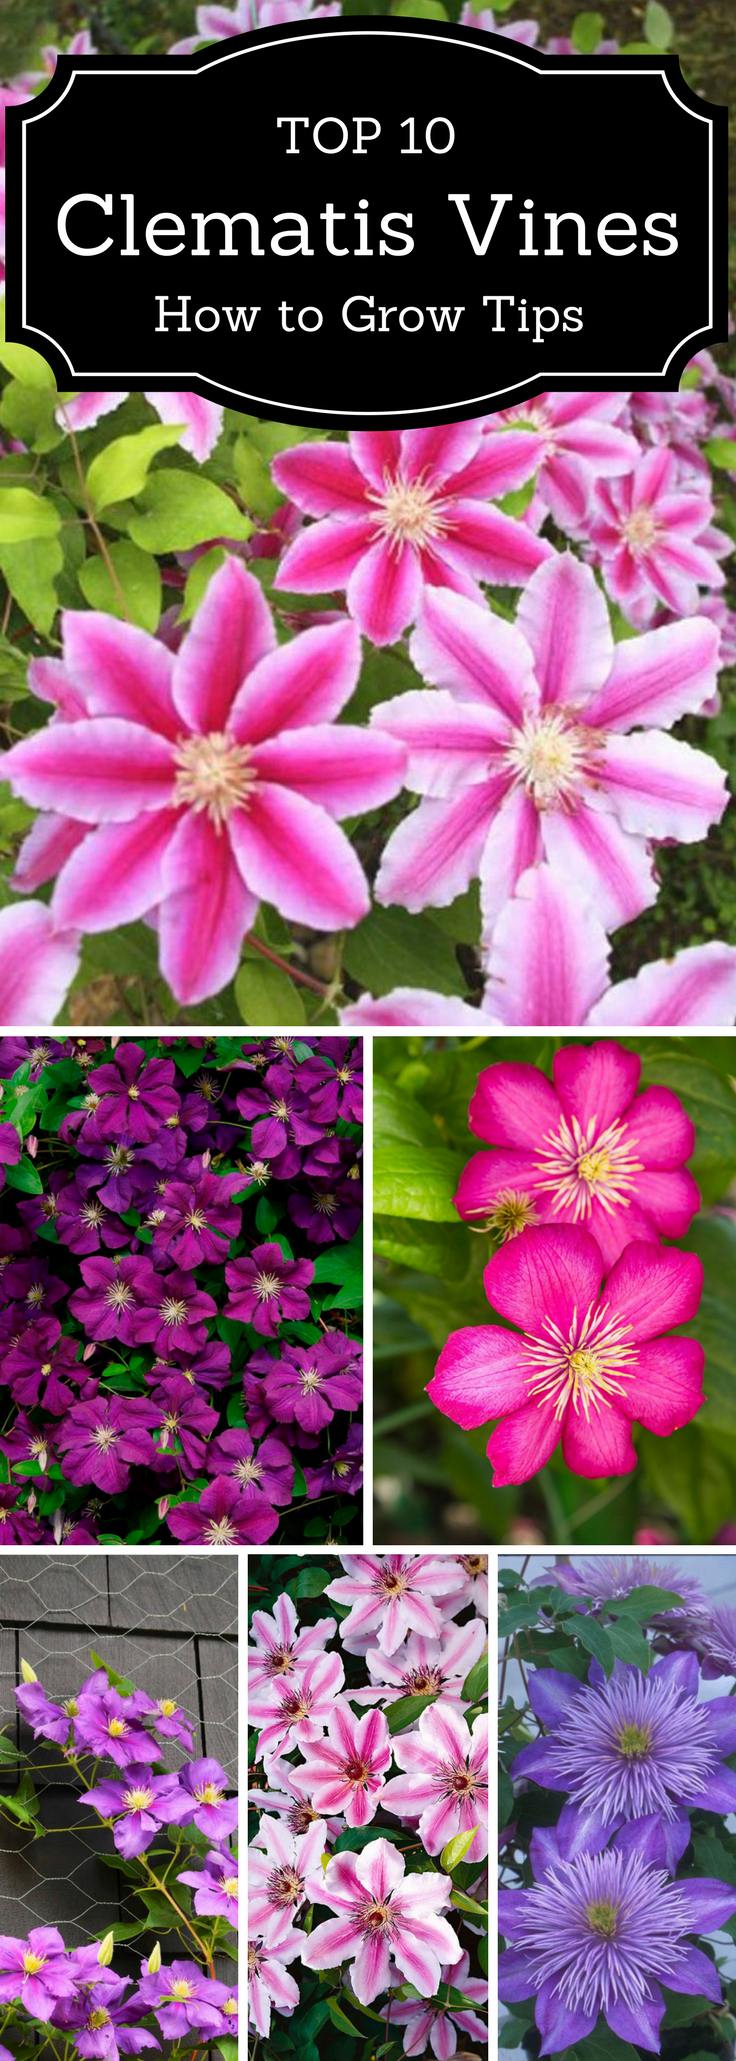 Top 10 Tips On Growing Gorgeous Clematis Vines Gardening